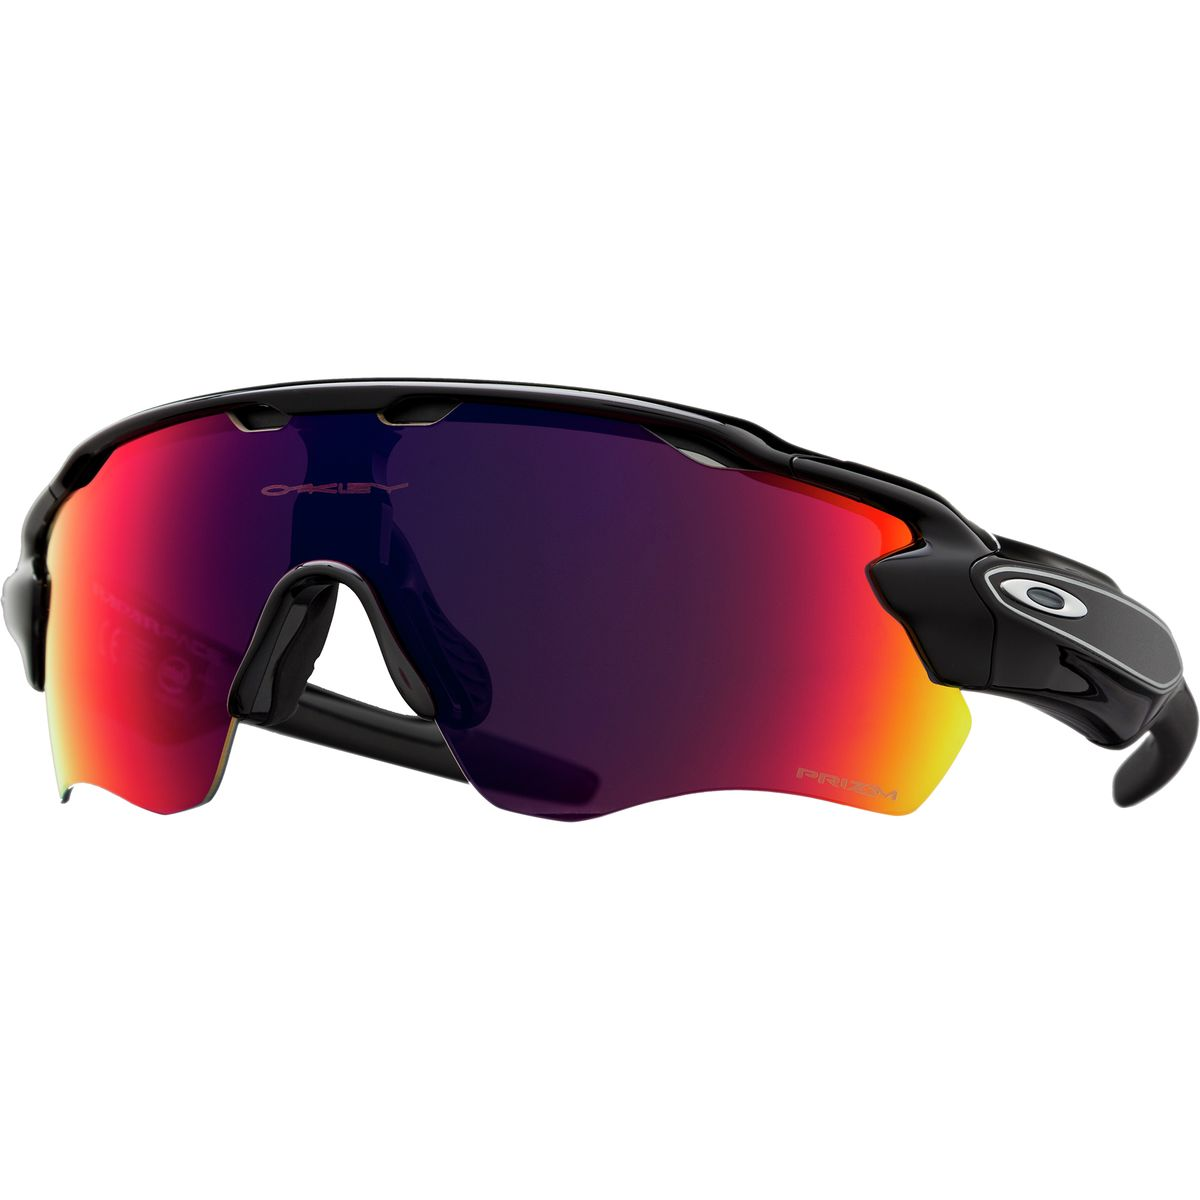 Oakley Radar Pace Polarized Sunglasses - Men's